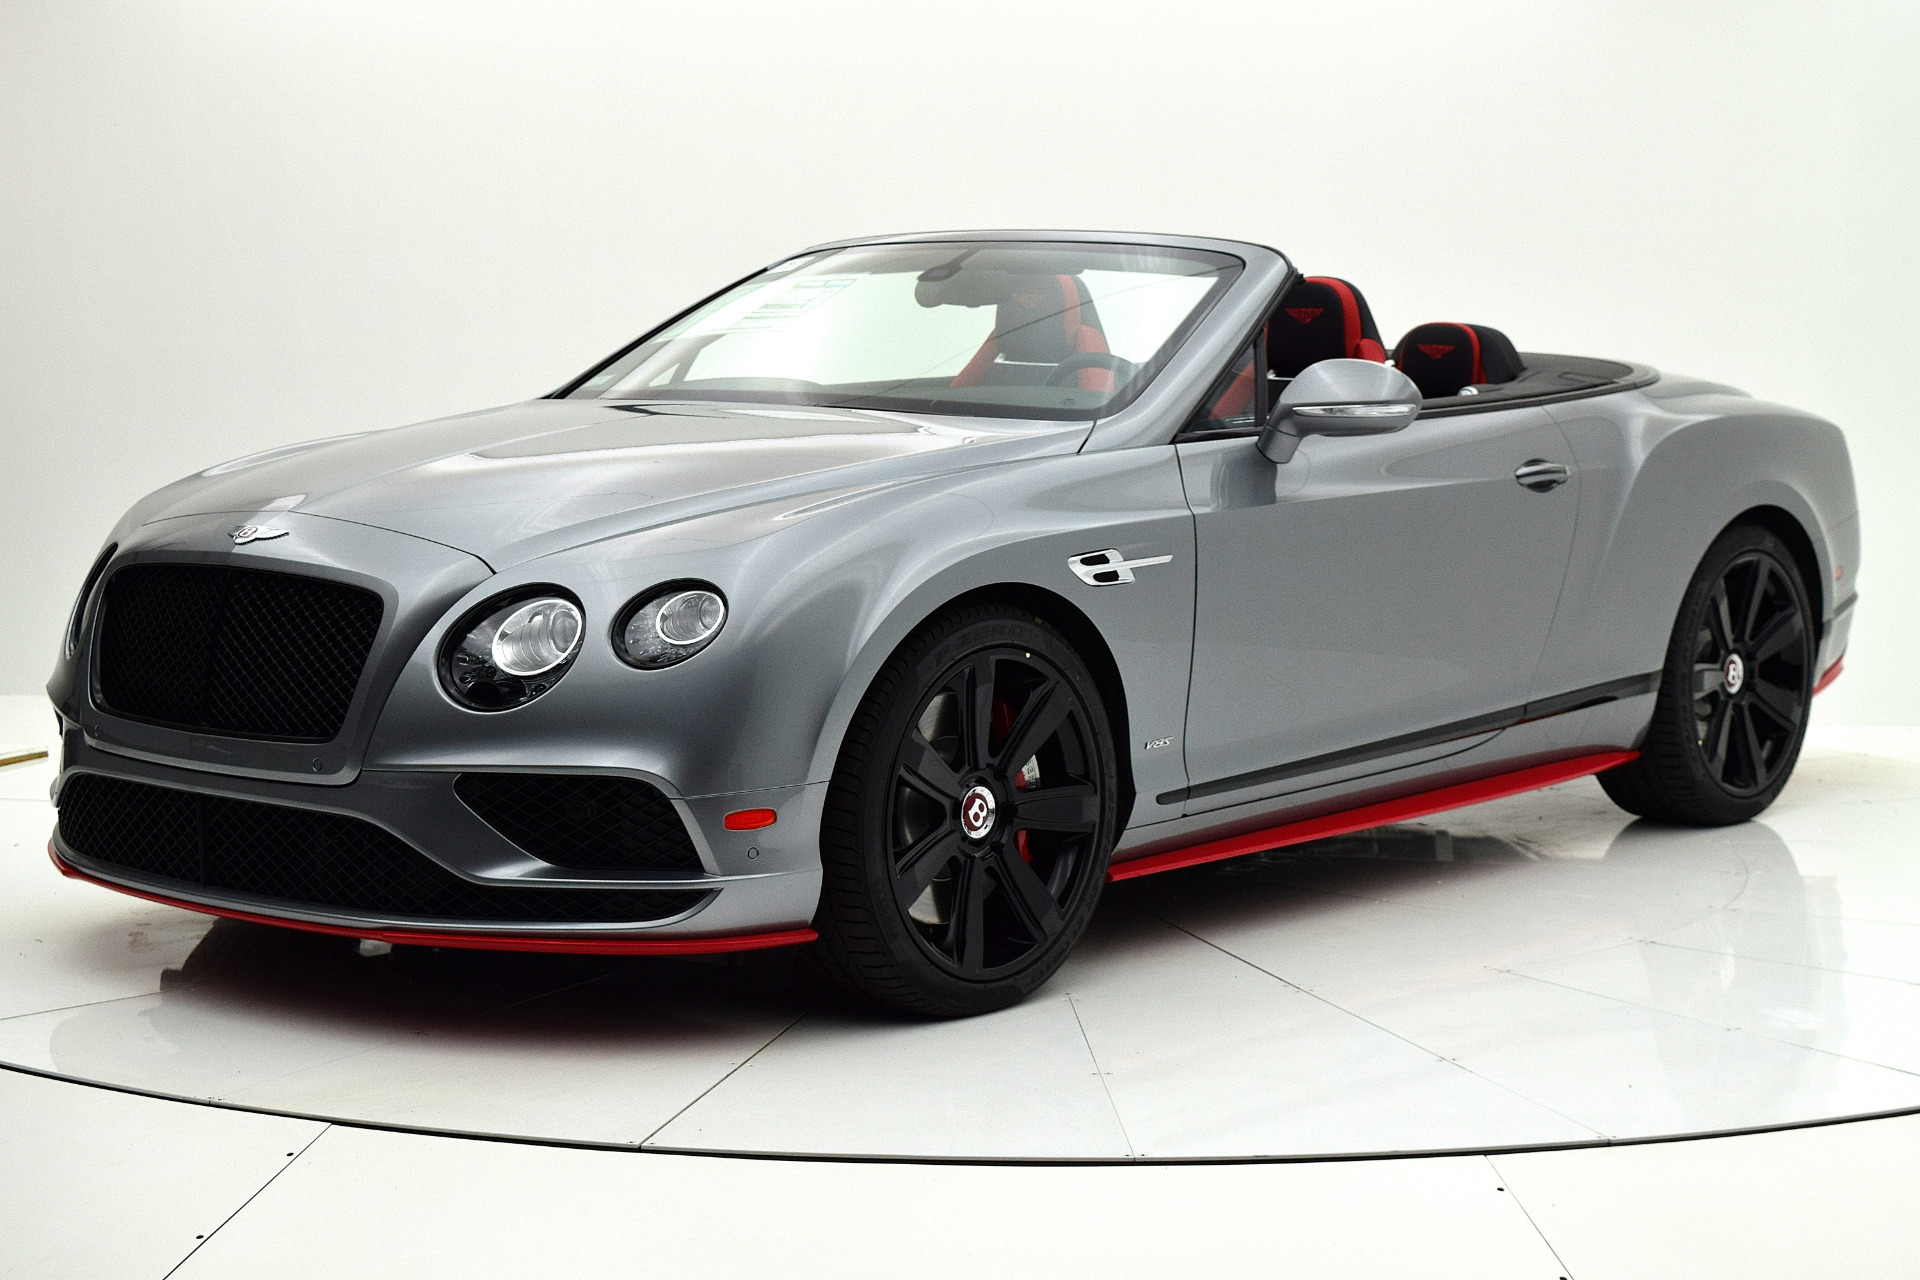 Used 2017 Bentley Continental Gt V8 S Convertible Black Edition For Sale 189 880 Bentley Palmyra N J Stock 17be159